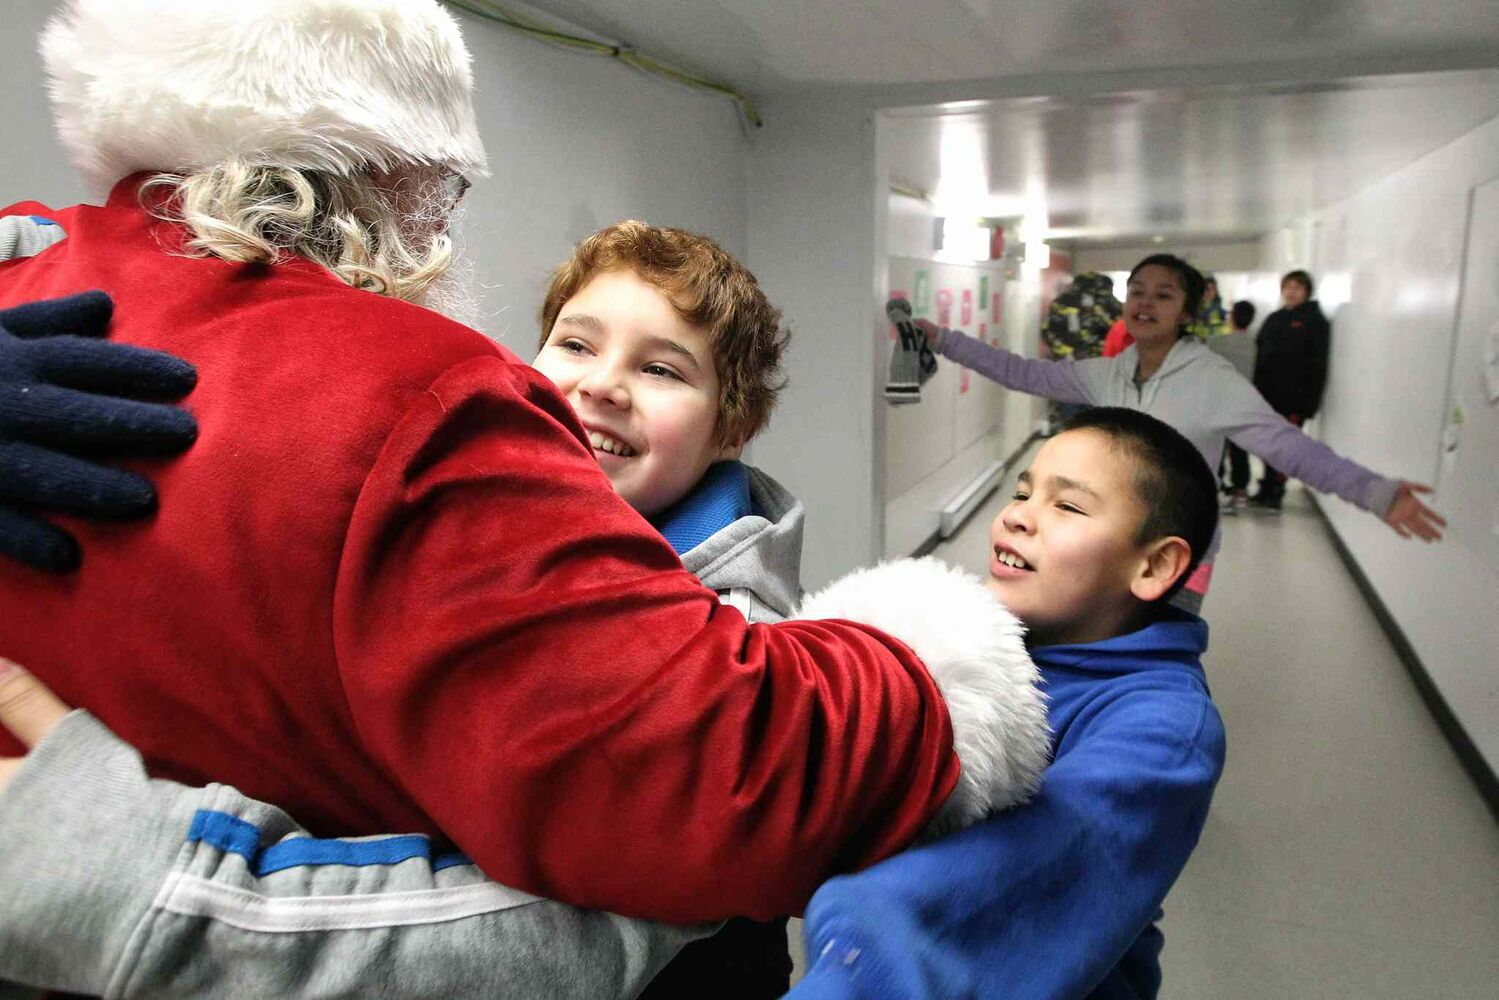 Santa greets kids at Wanipigow School on the Hollow Water First Nation after arriving with MKO Grand Chief David Harper during the Santa Express tour. (Mike Deal / Winnipeg Free Press)